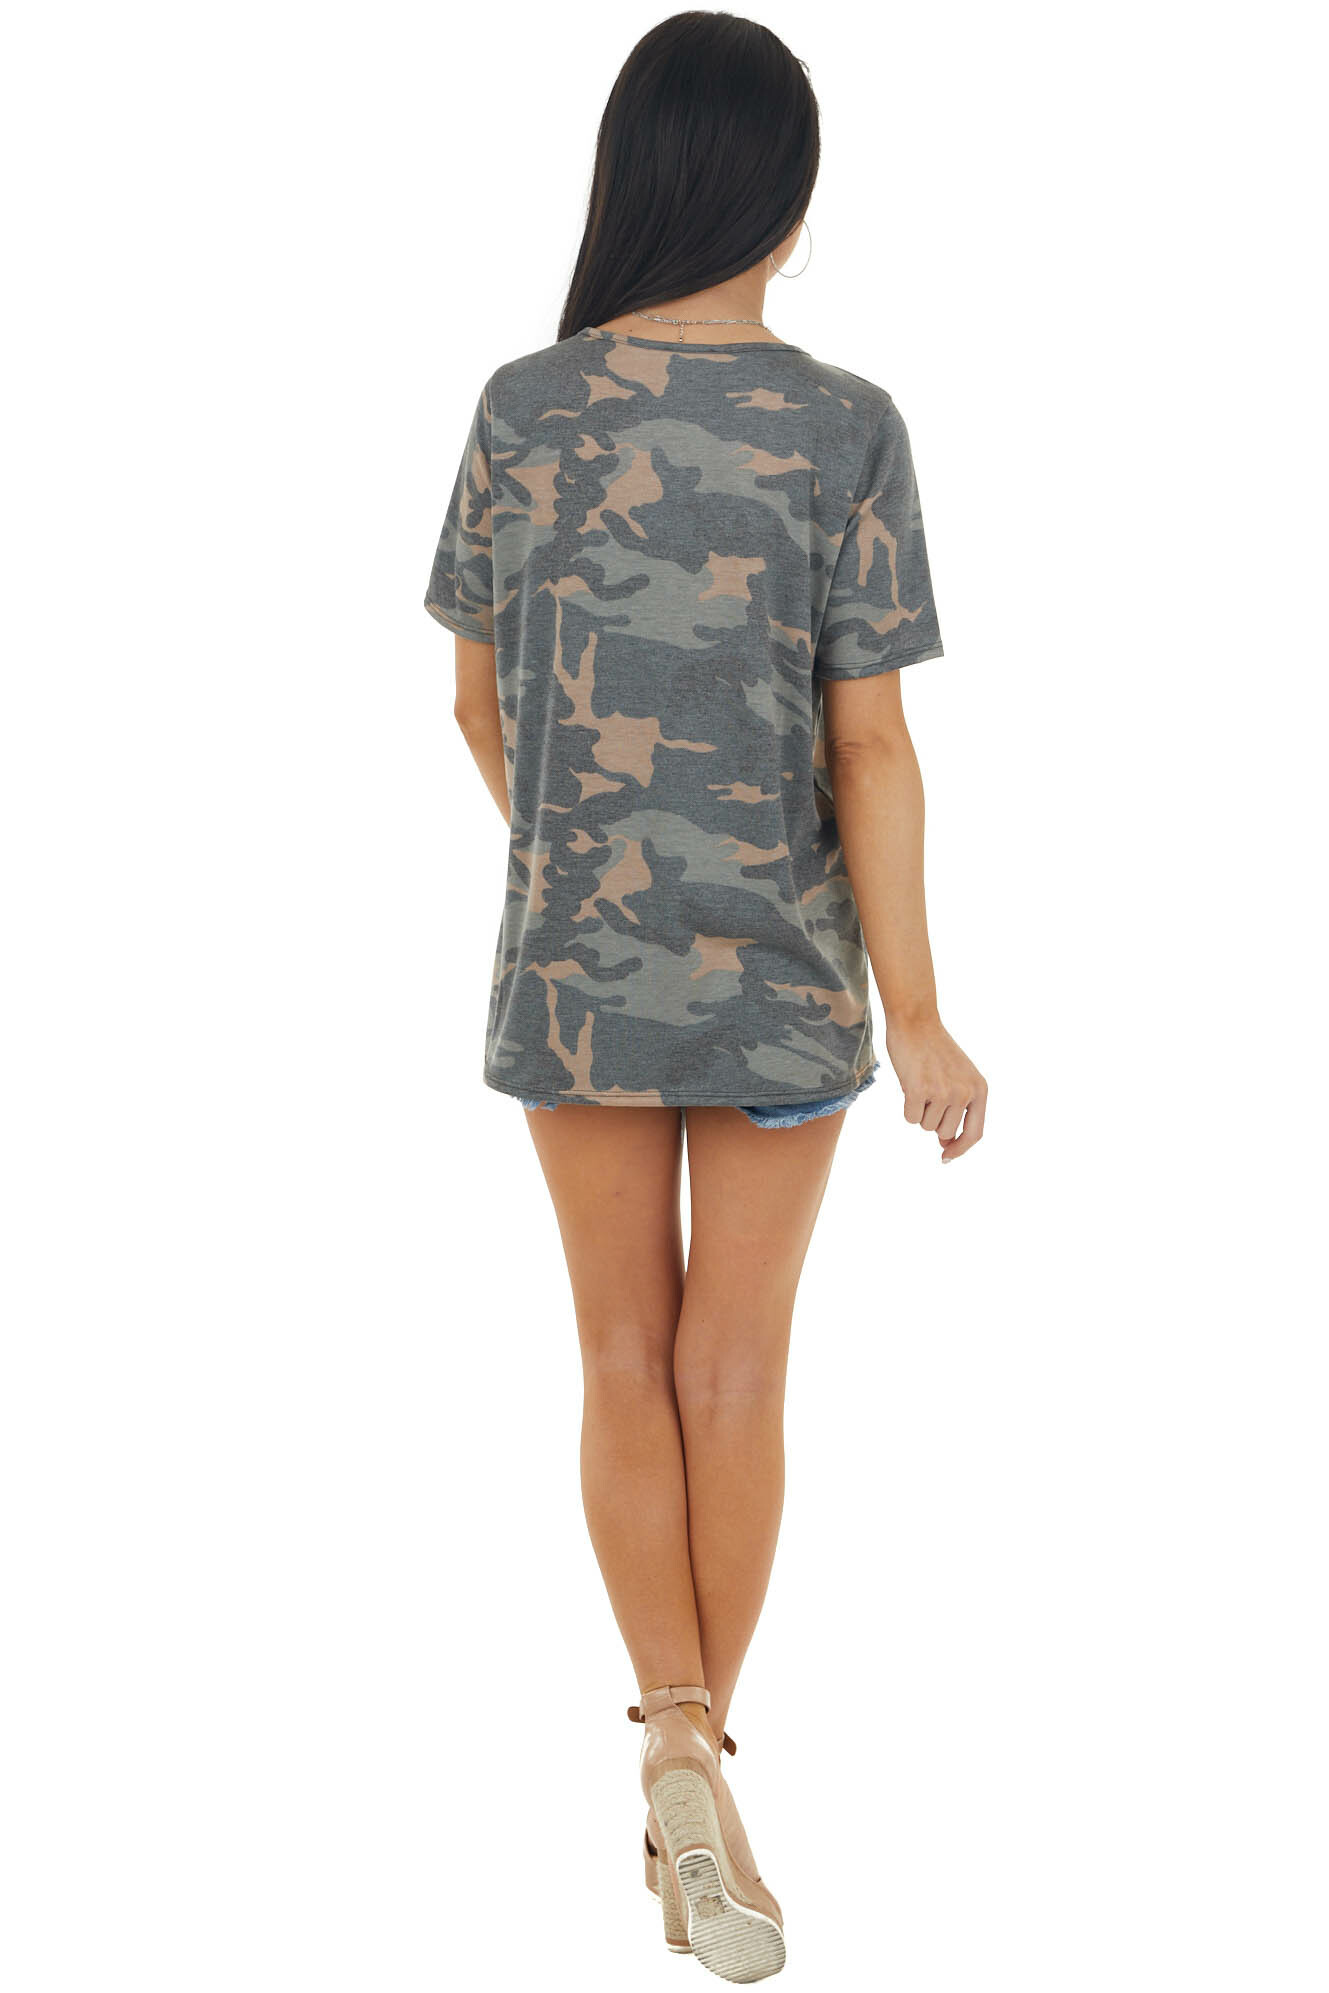 Faded Stone Camo Print Short Sleeve Top with Sequin Details